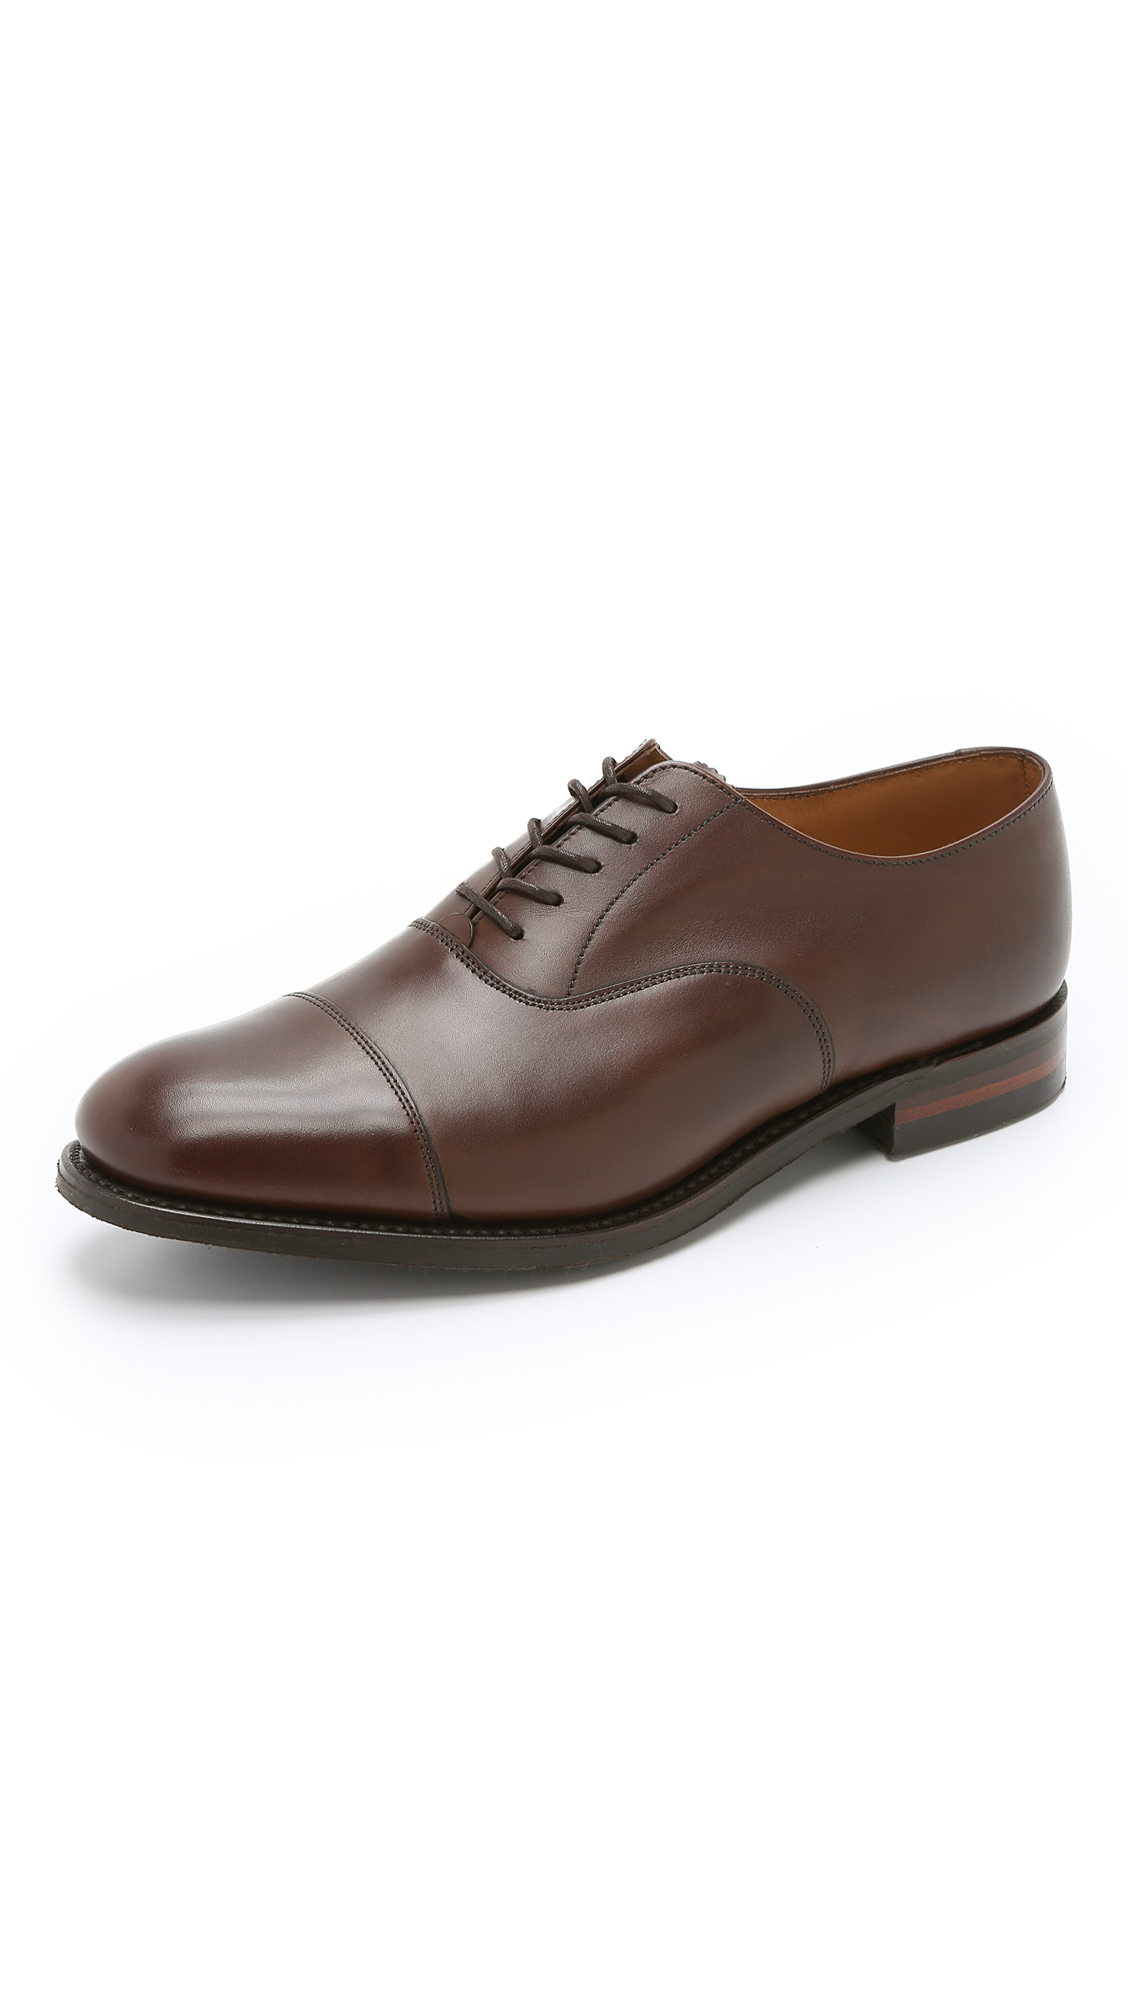 Brown Leather Oxford Shoes Rubber